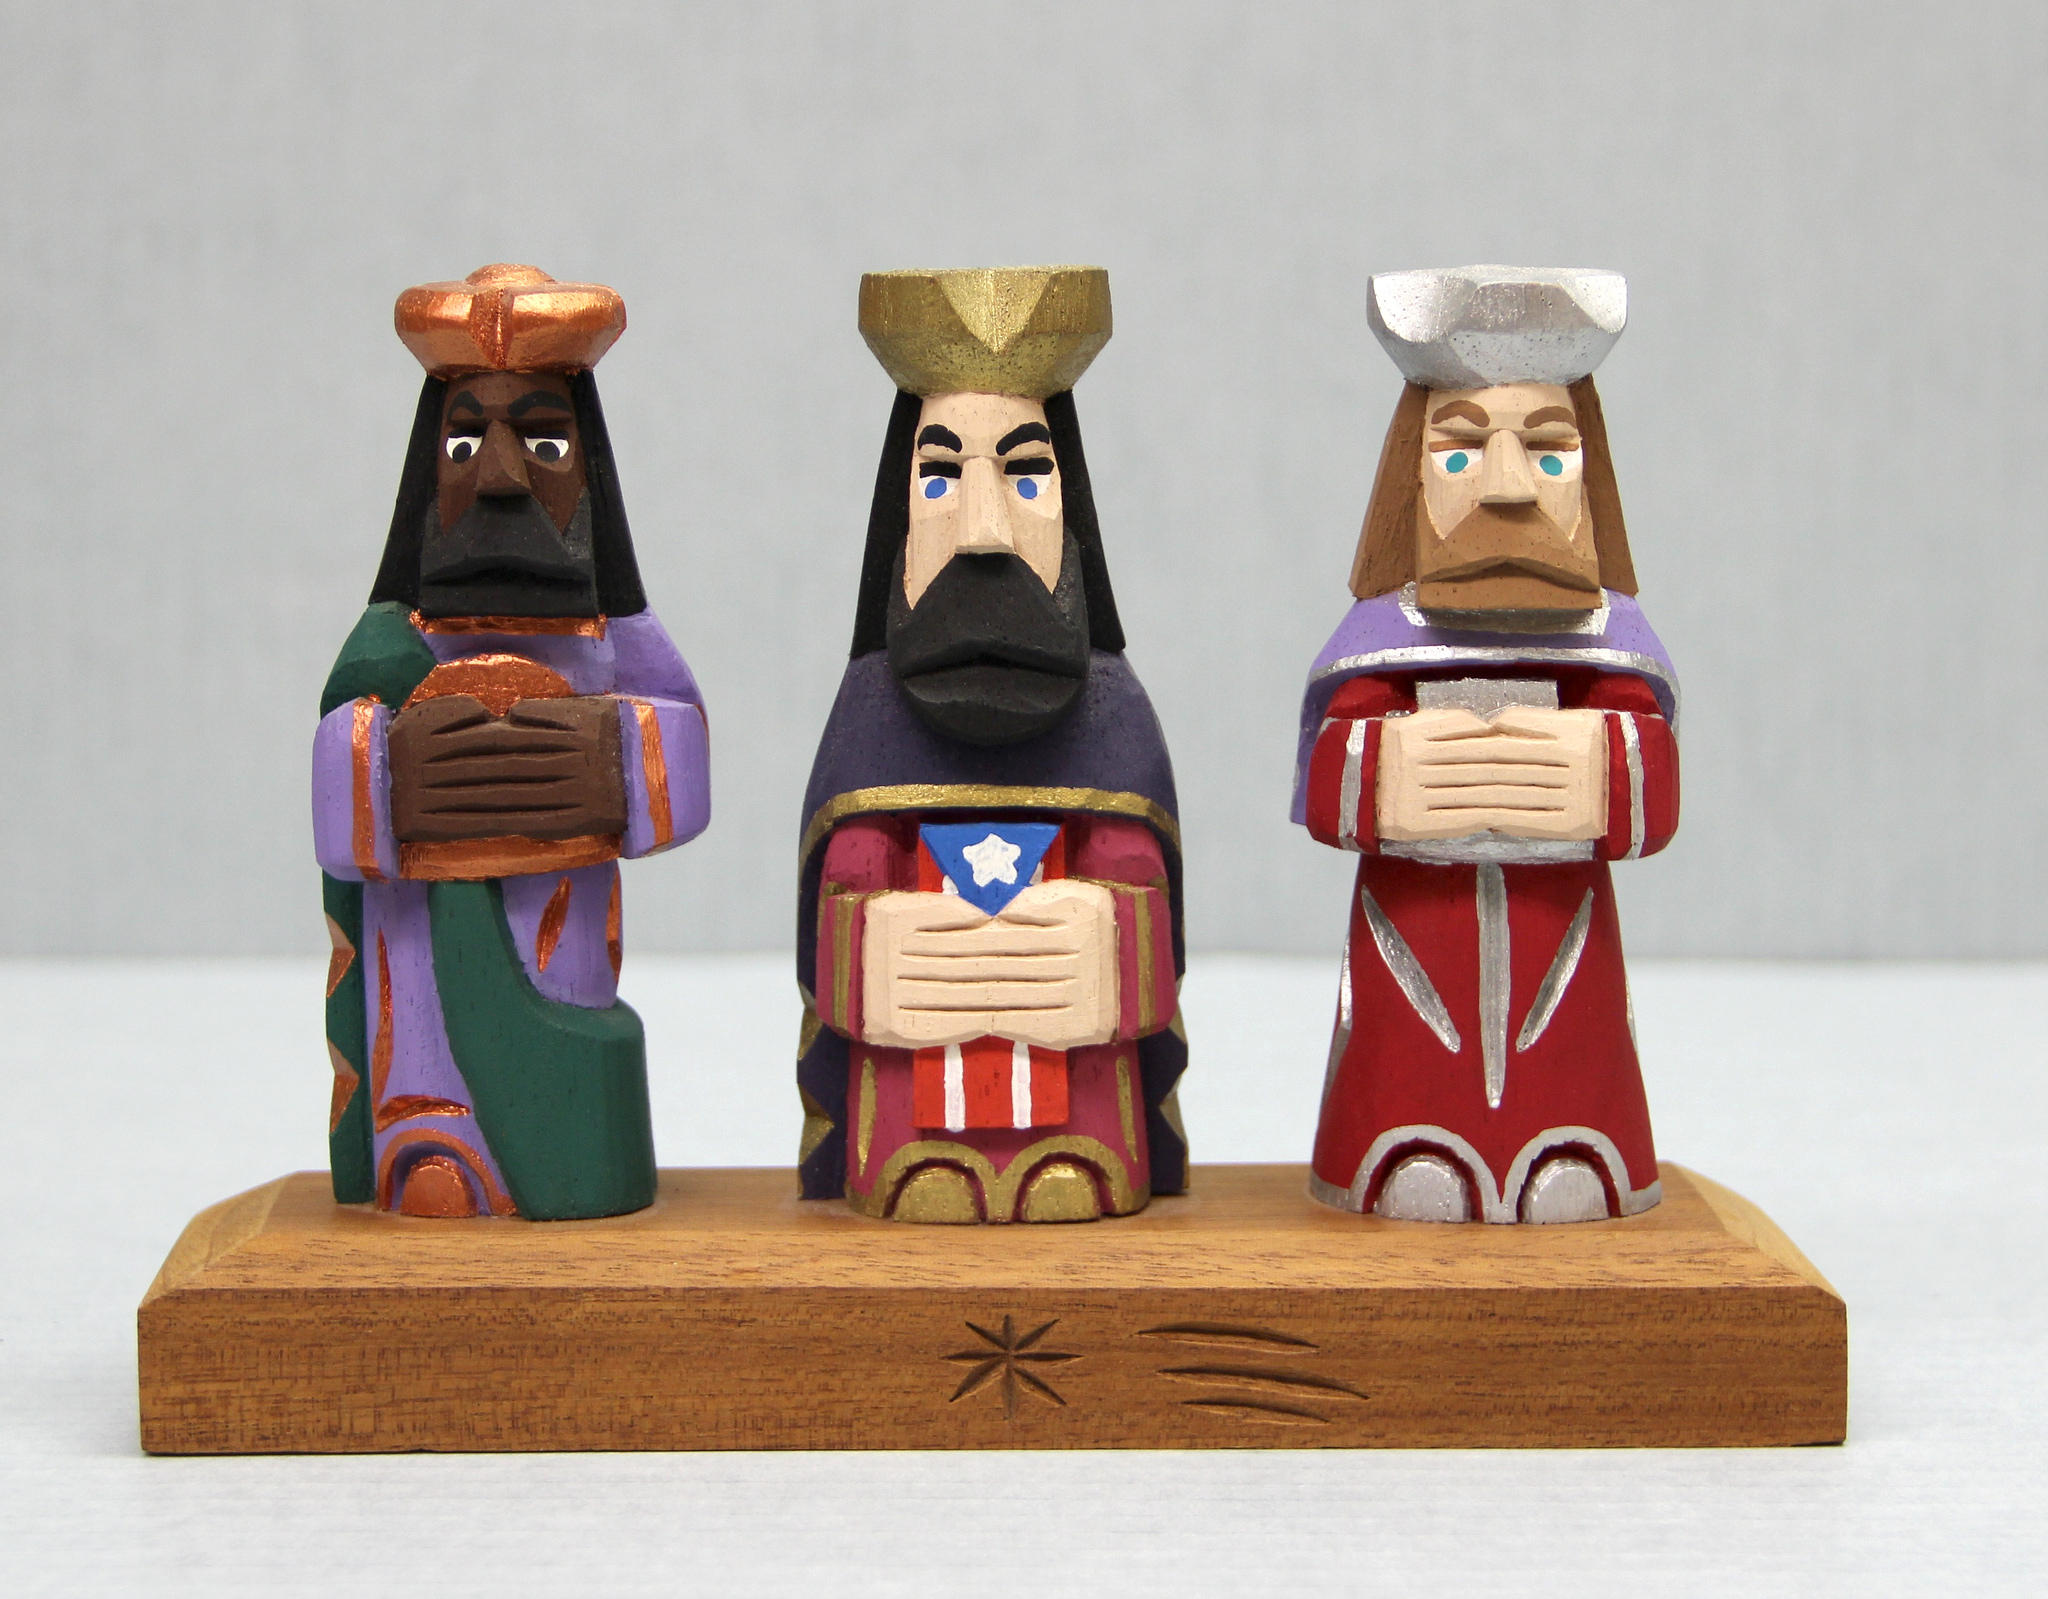 Three Kings Day is an important celebration among Latino families in the U.S., and is both a religious and cultural celebration.